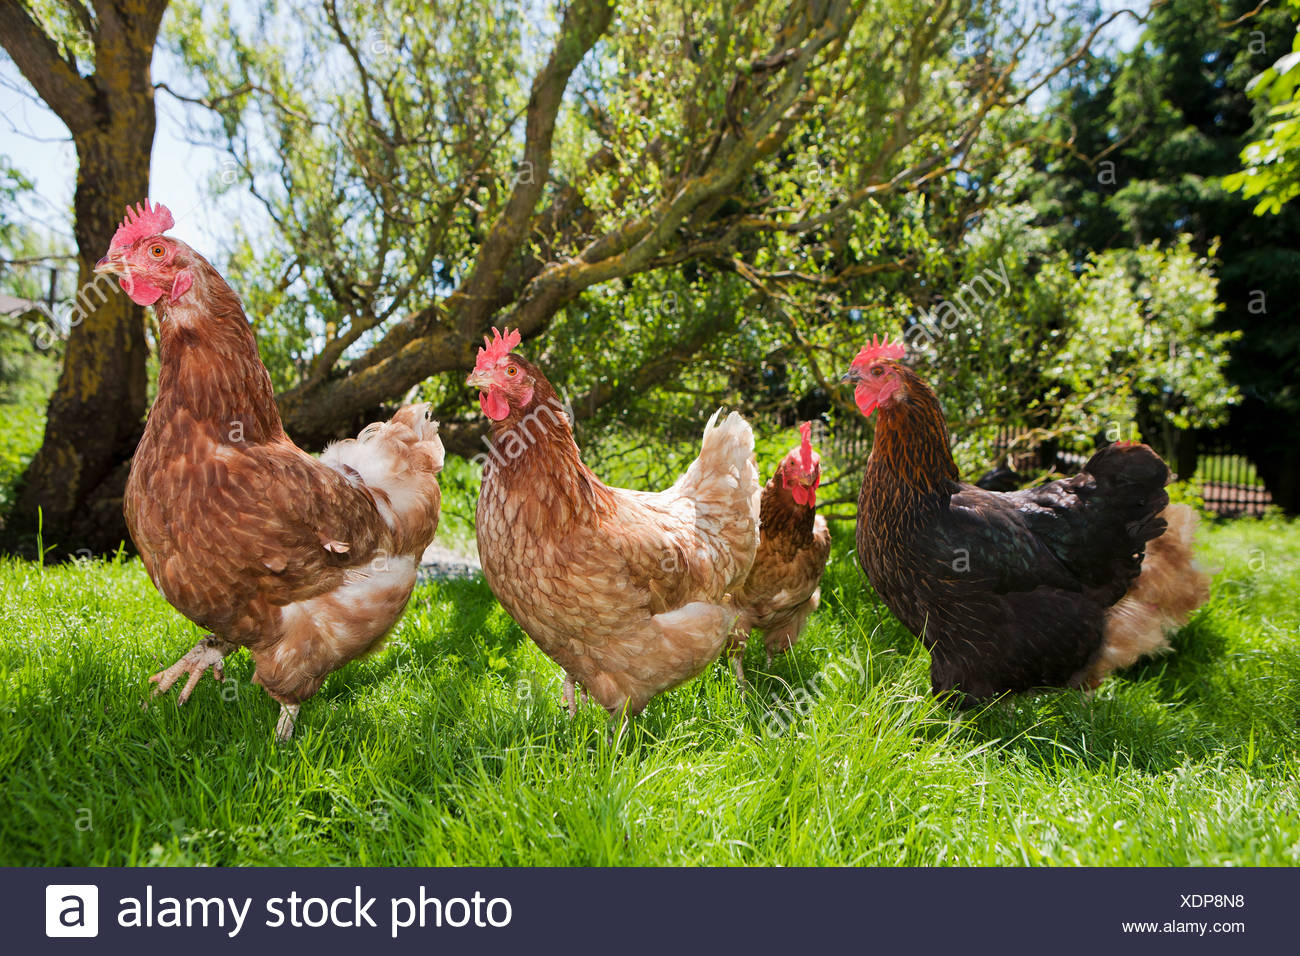 Hens on grass - Stock Image